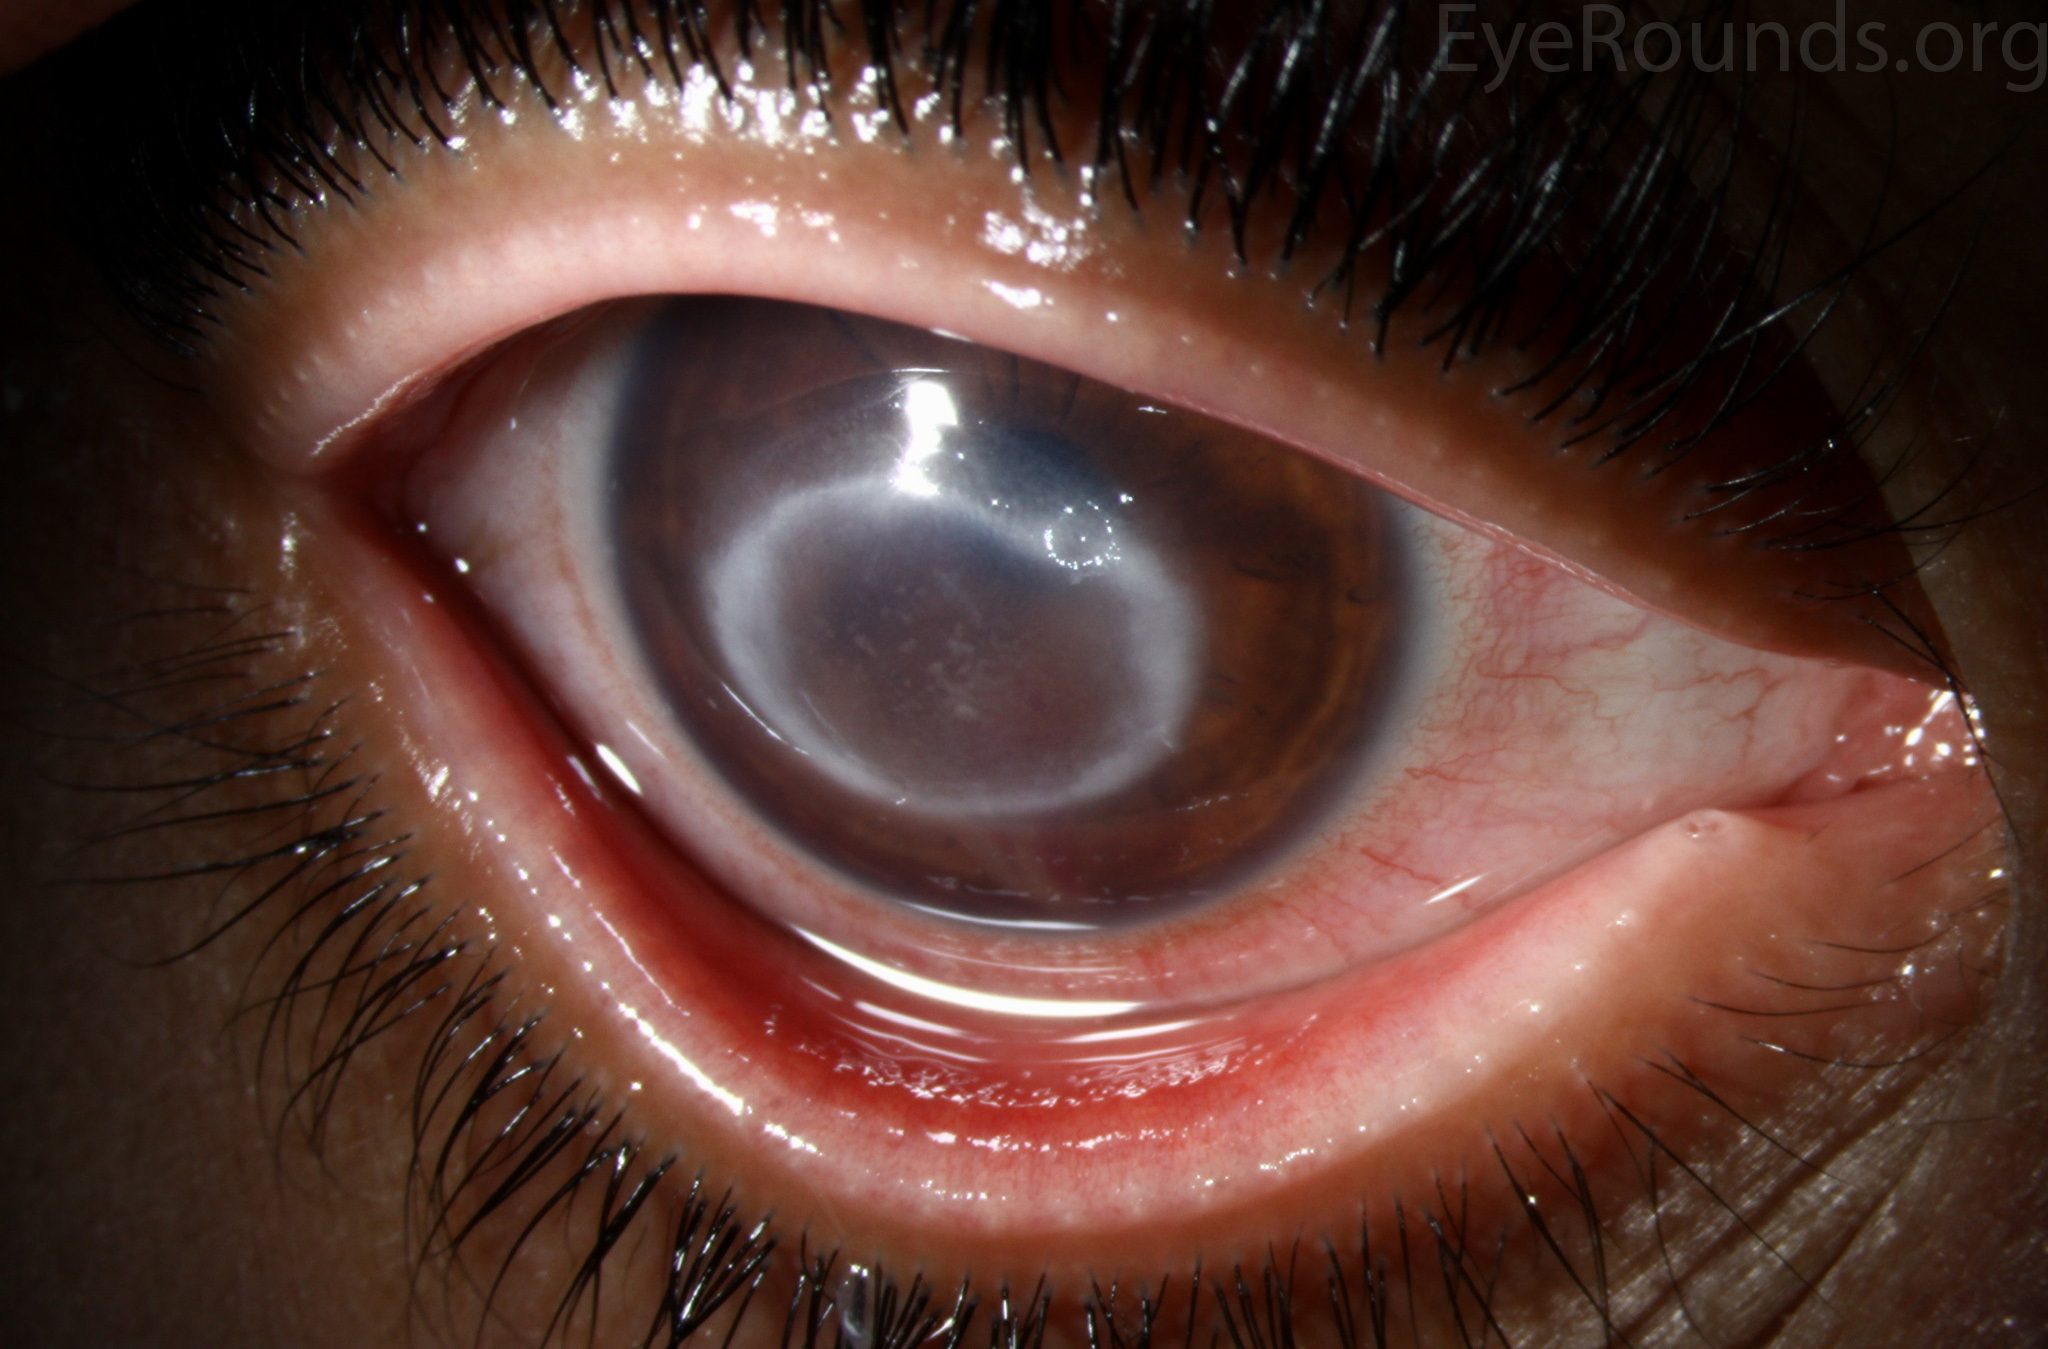 health acanthamoeba keratitis from contact lenses